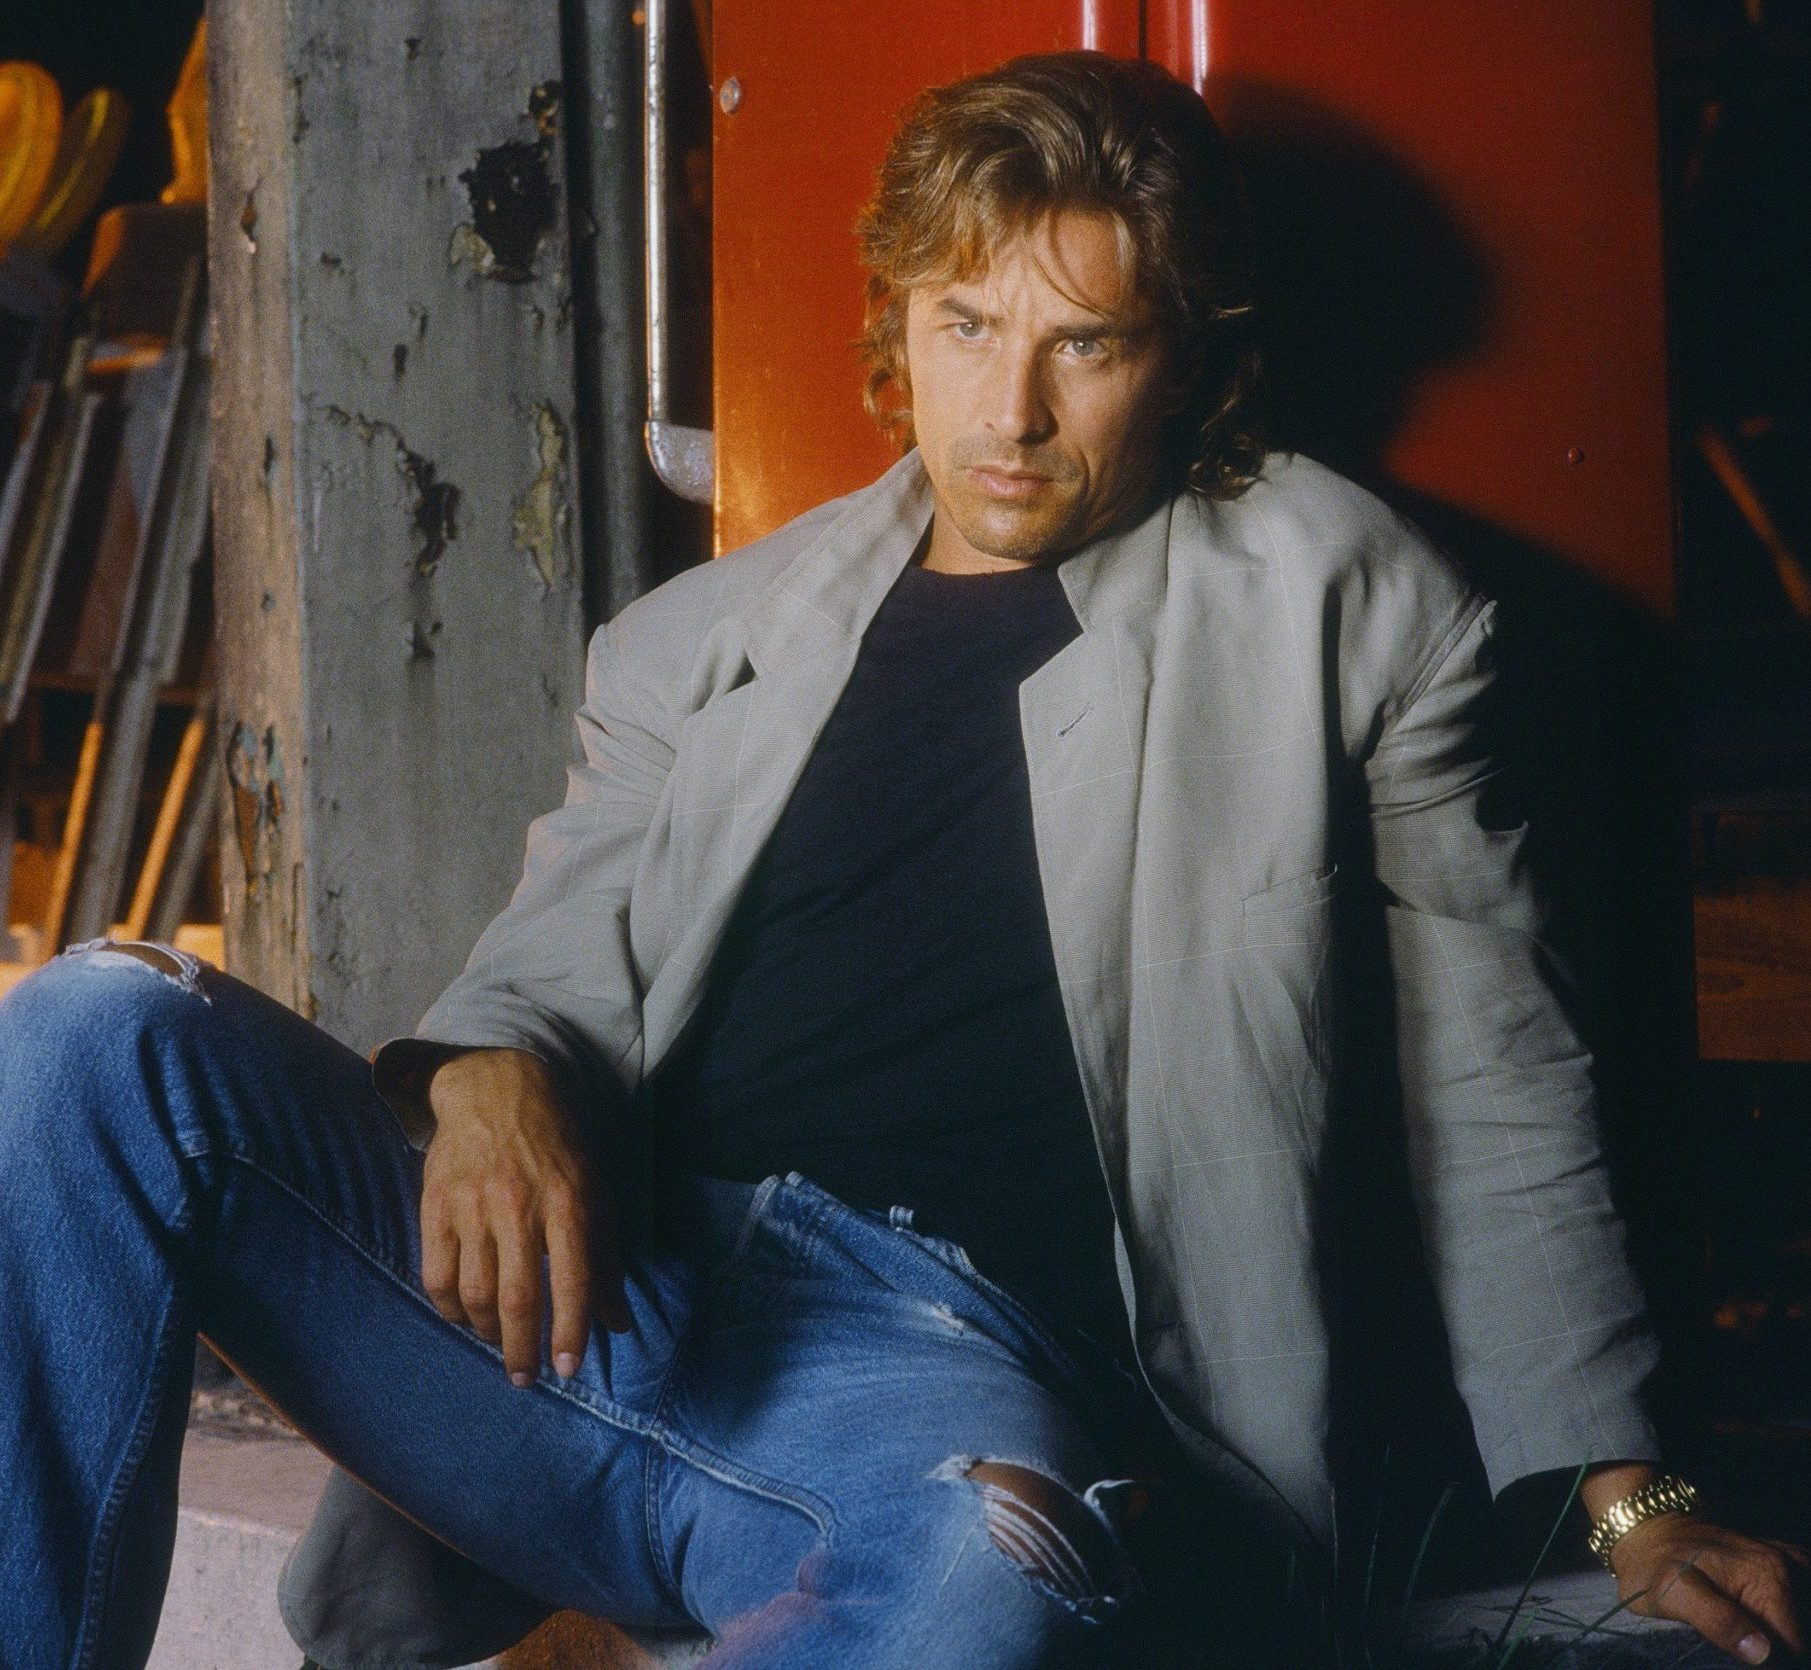 rs 171047 140957963 scaled e1608307959483 20 Things You Probably Didn't Know About Miami Vice